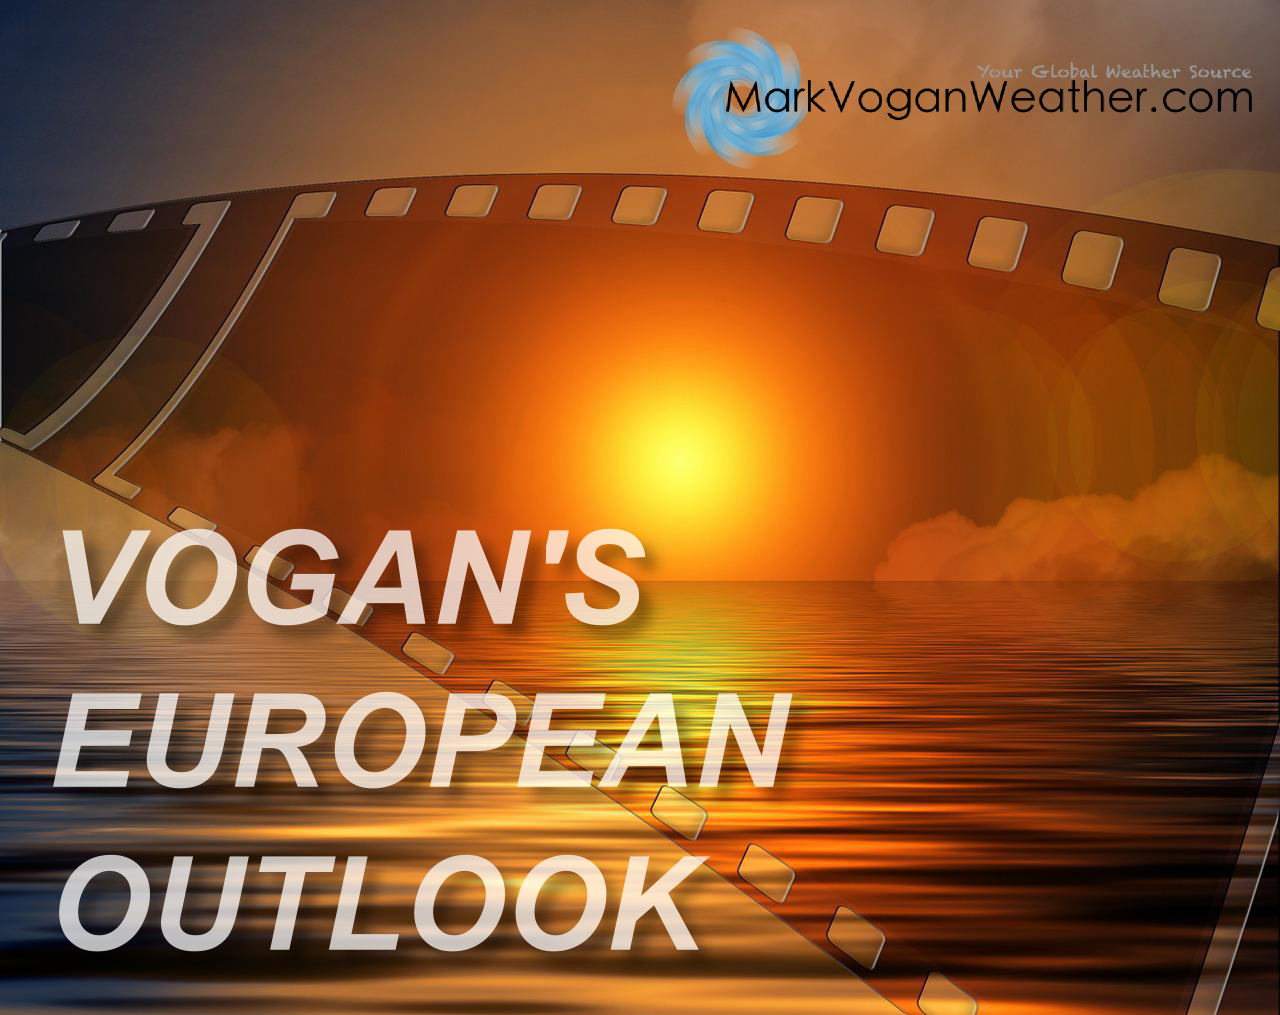 WED 19 NOV: VOGAN'S EUROPEAN OUTLOOK